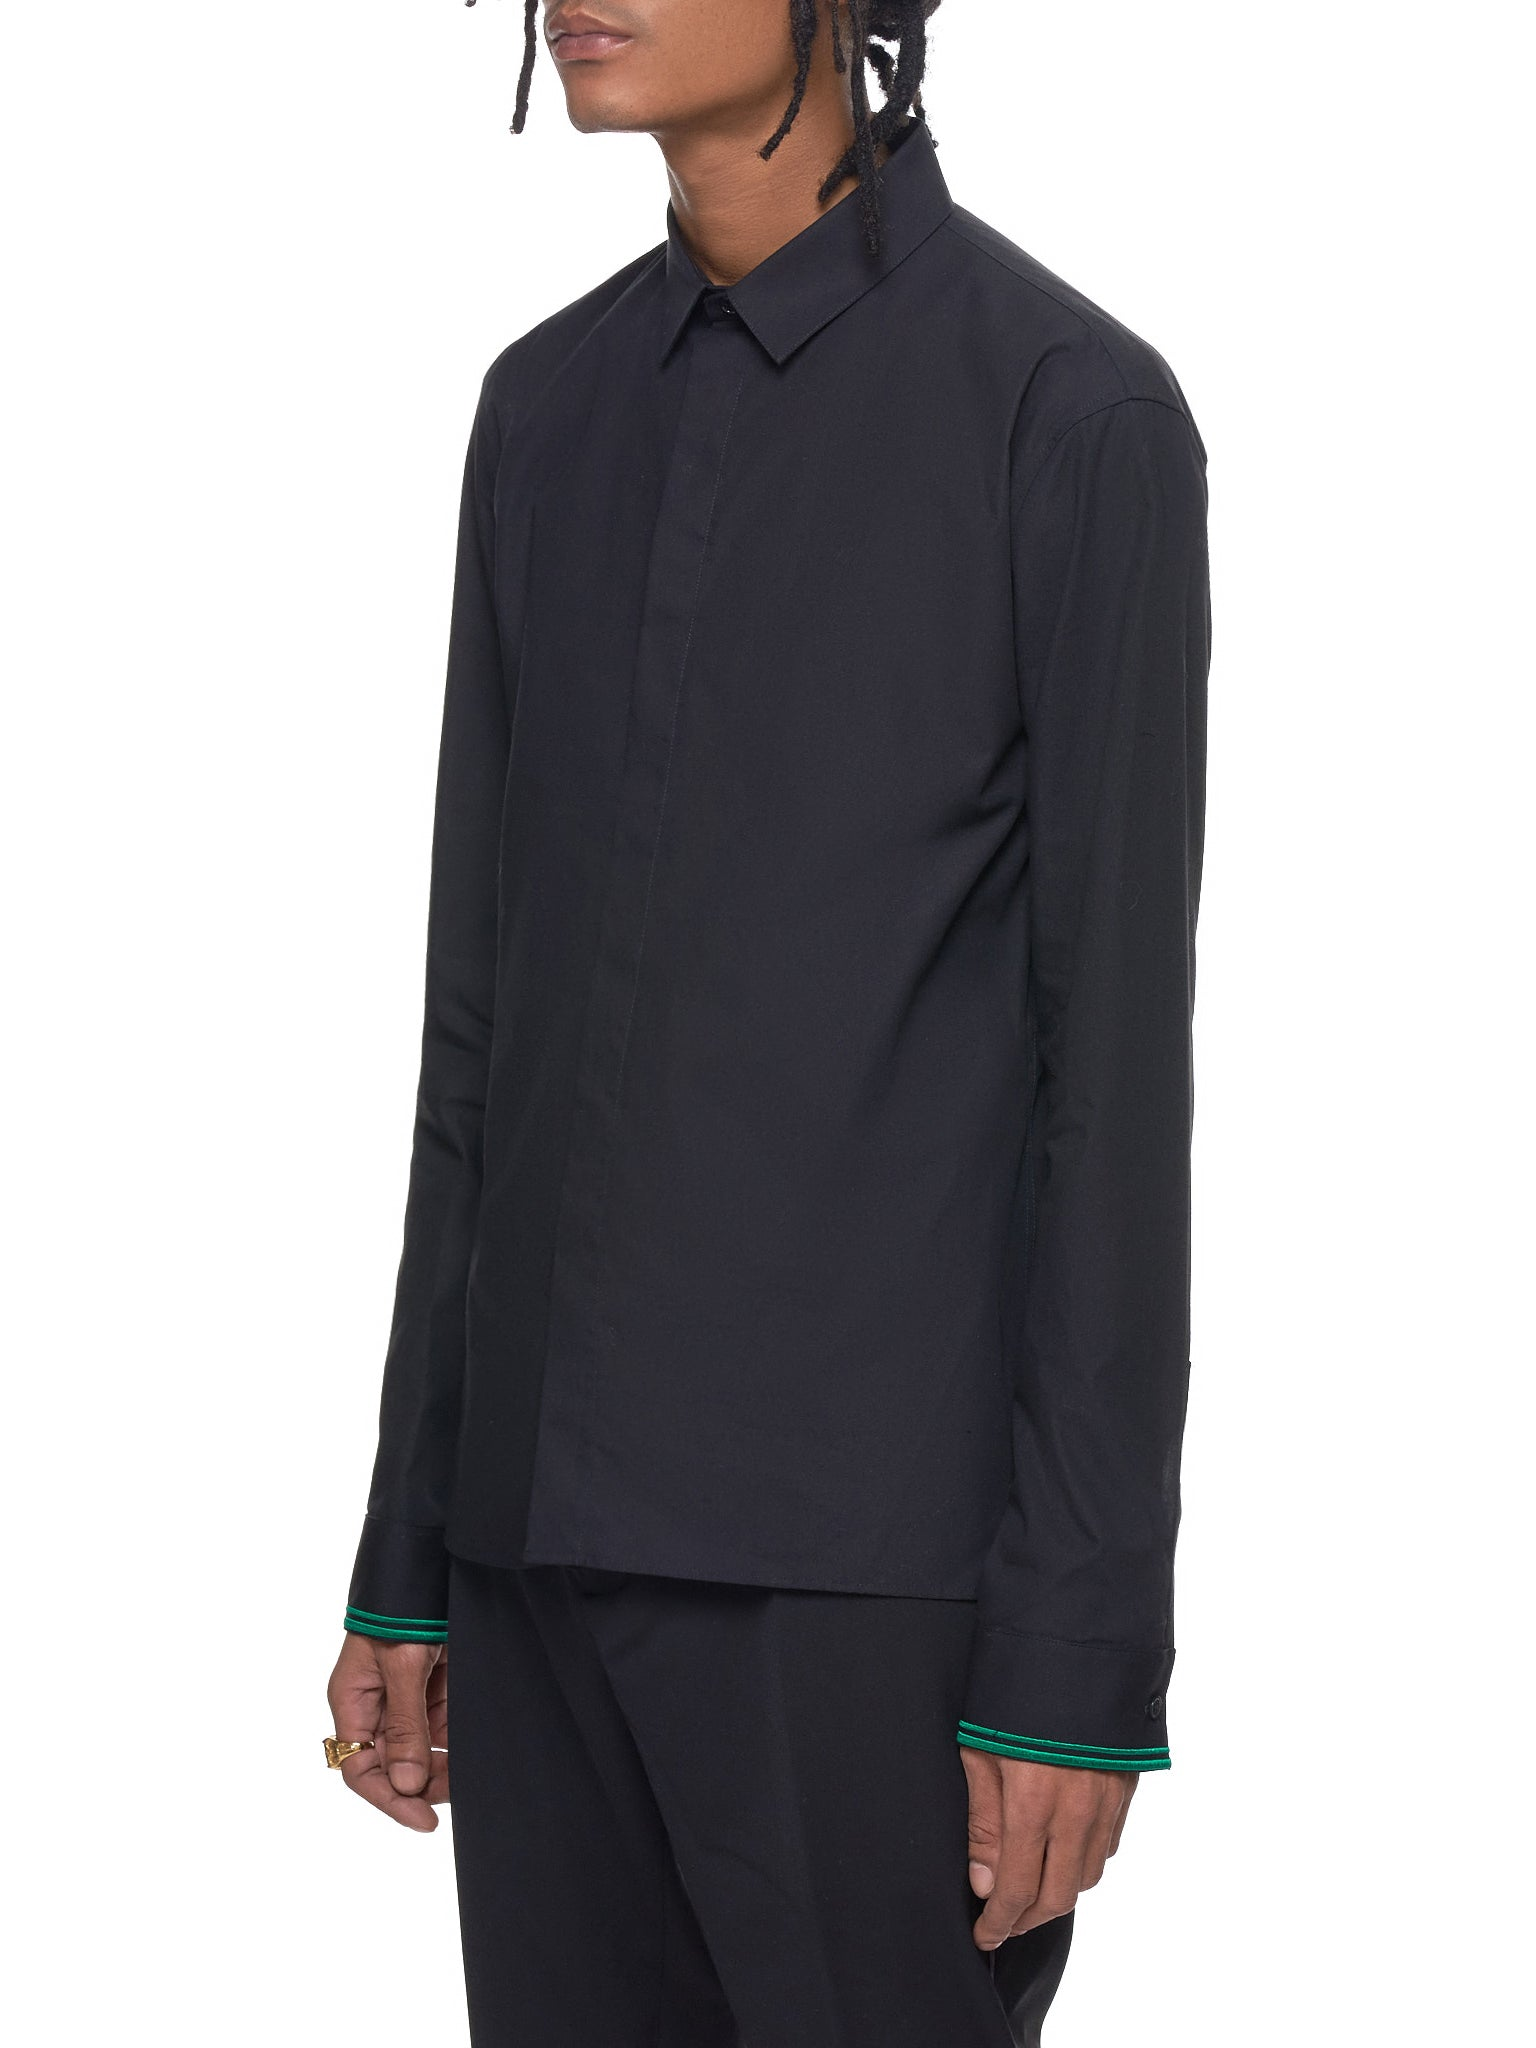 Haider Ackermann Shirt - Hlorenzo Side